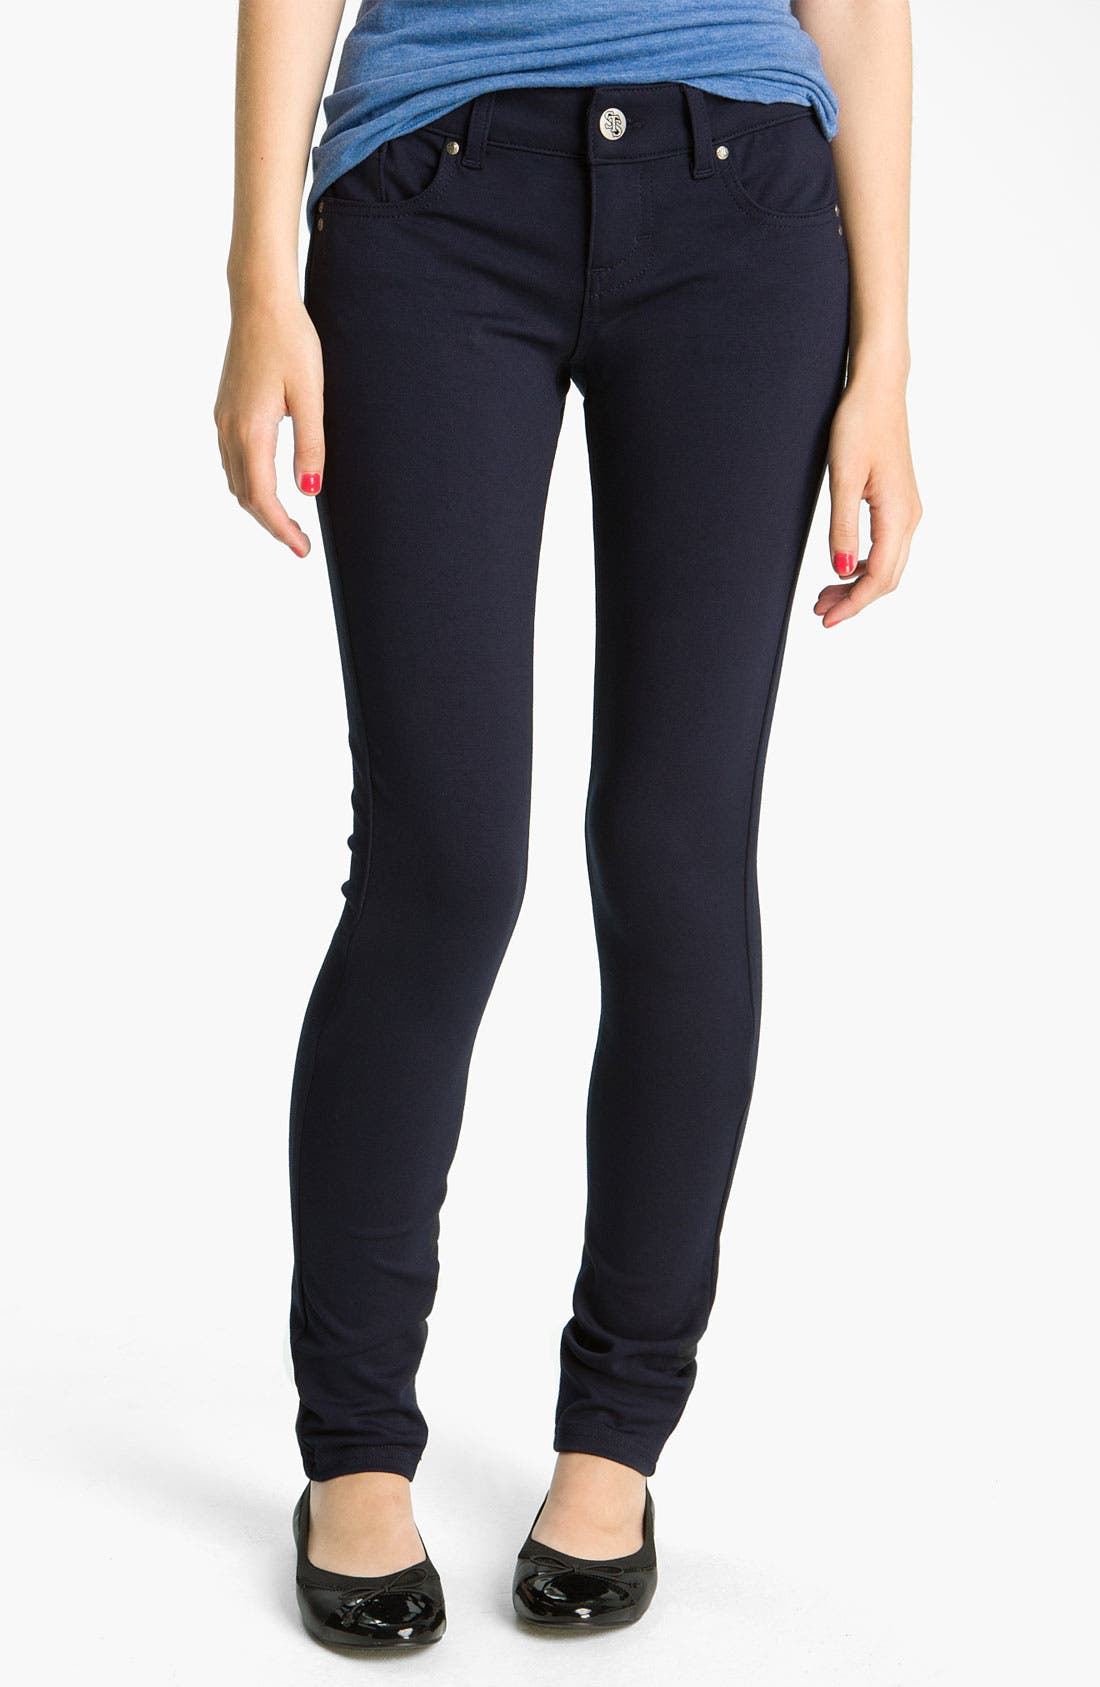 Alternate Image 1 Selected - See Thru Soul Skinny Ponte Pants (Juniors)